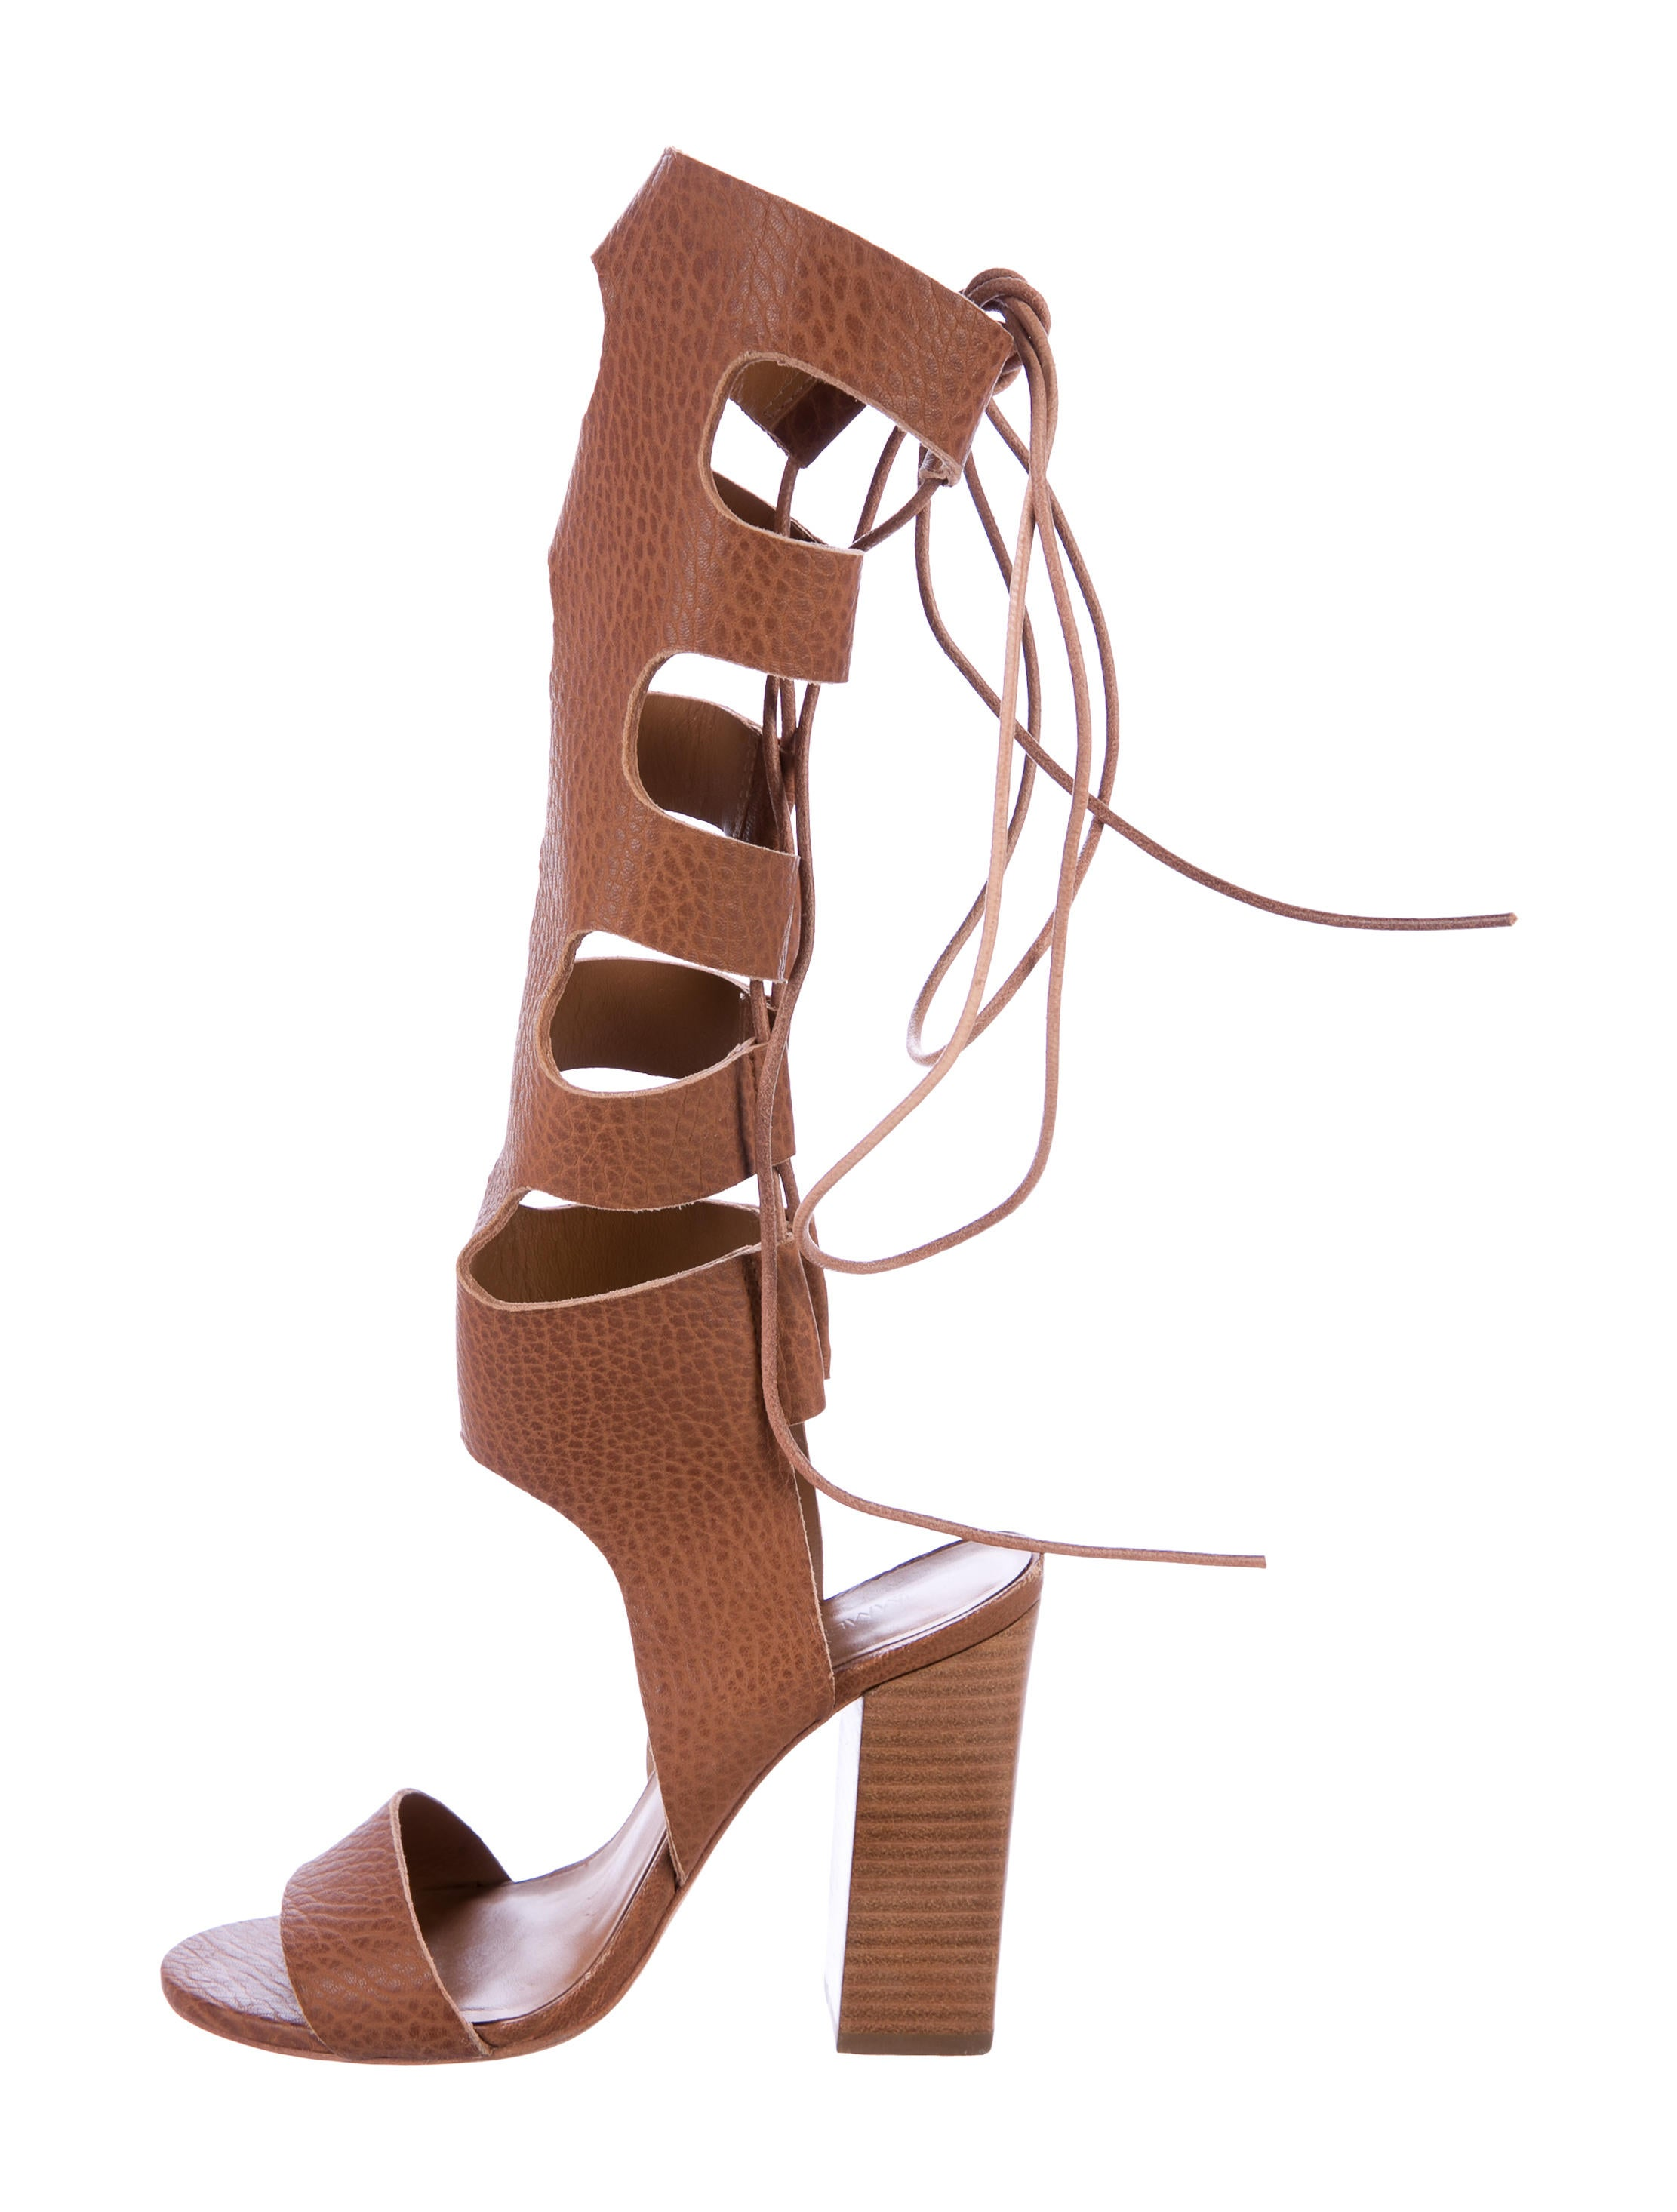 free shipping 2014 newest for cheap for sale Zimmermann Leather Gladiator Sandals buy cheap top quality aGAuI